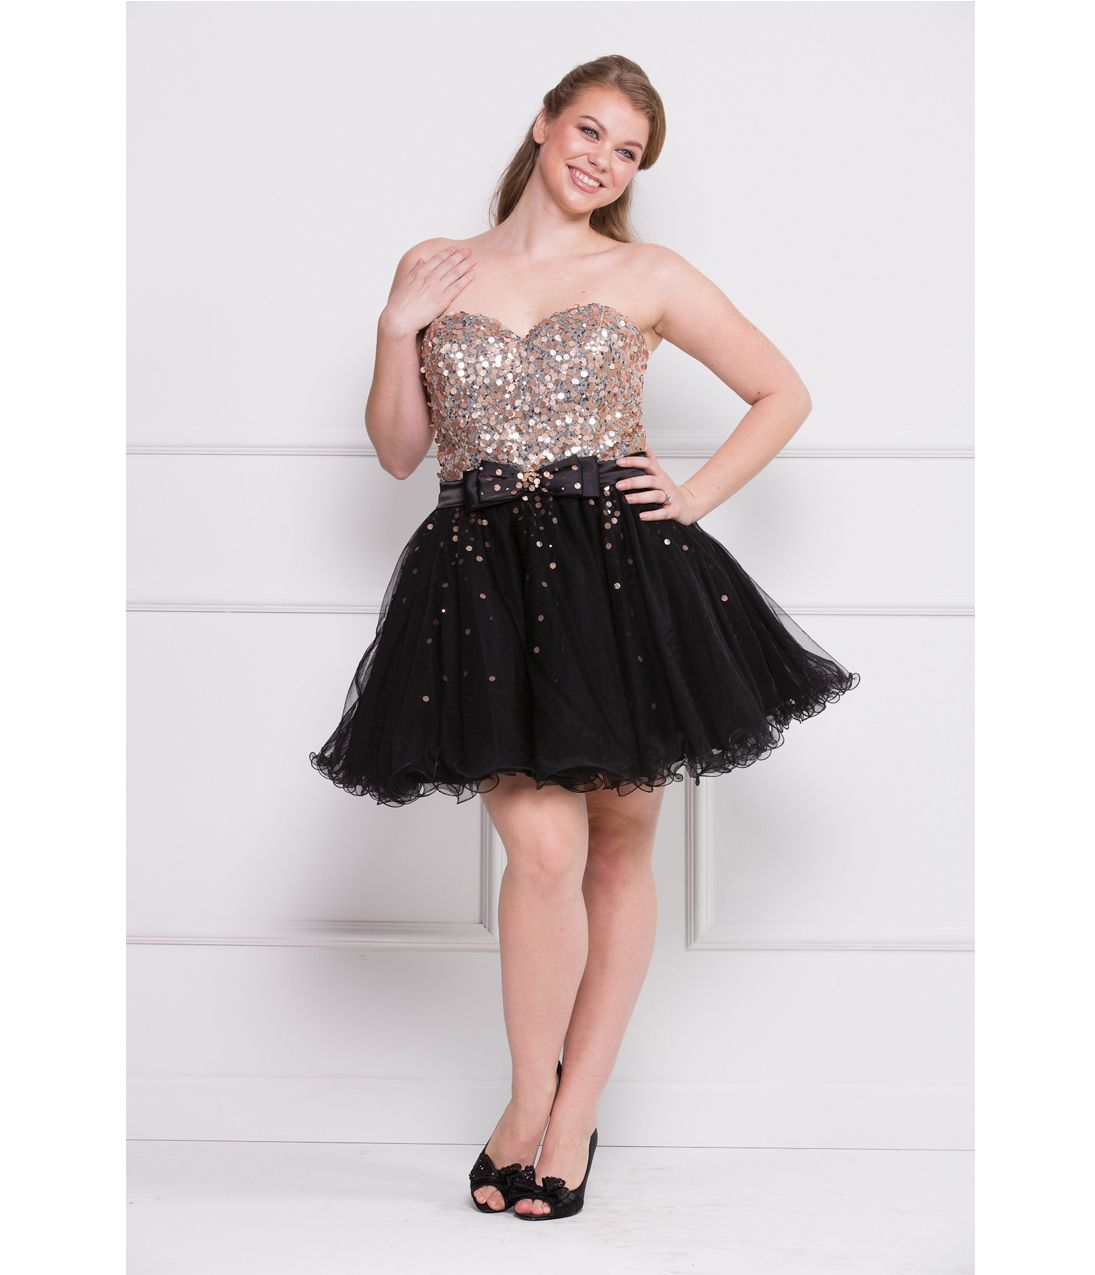 2013 Prom Dresses - Black & Gold Strapless Sequin Short Plus Size ...